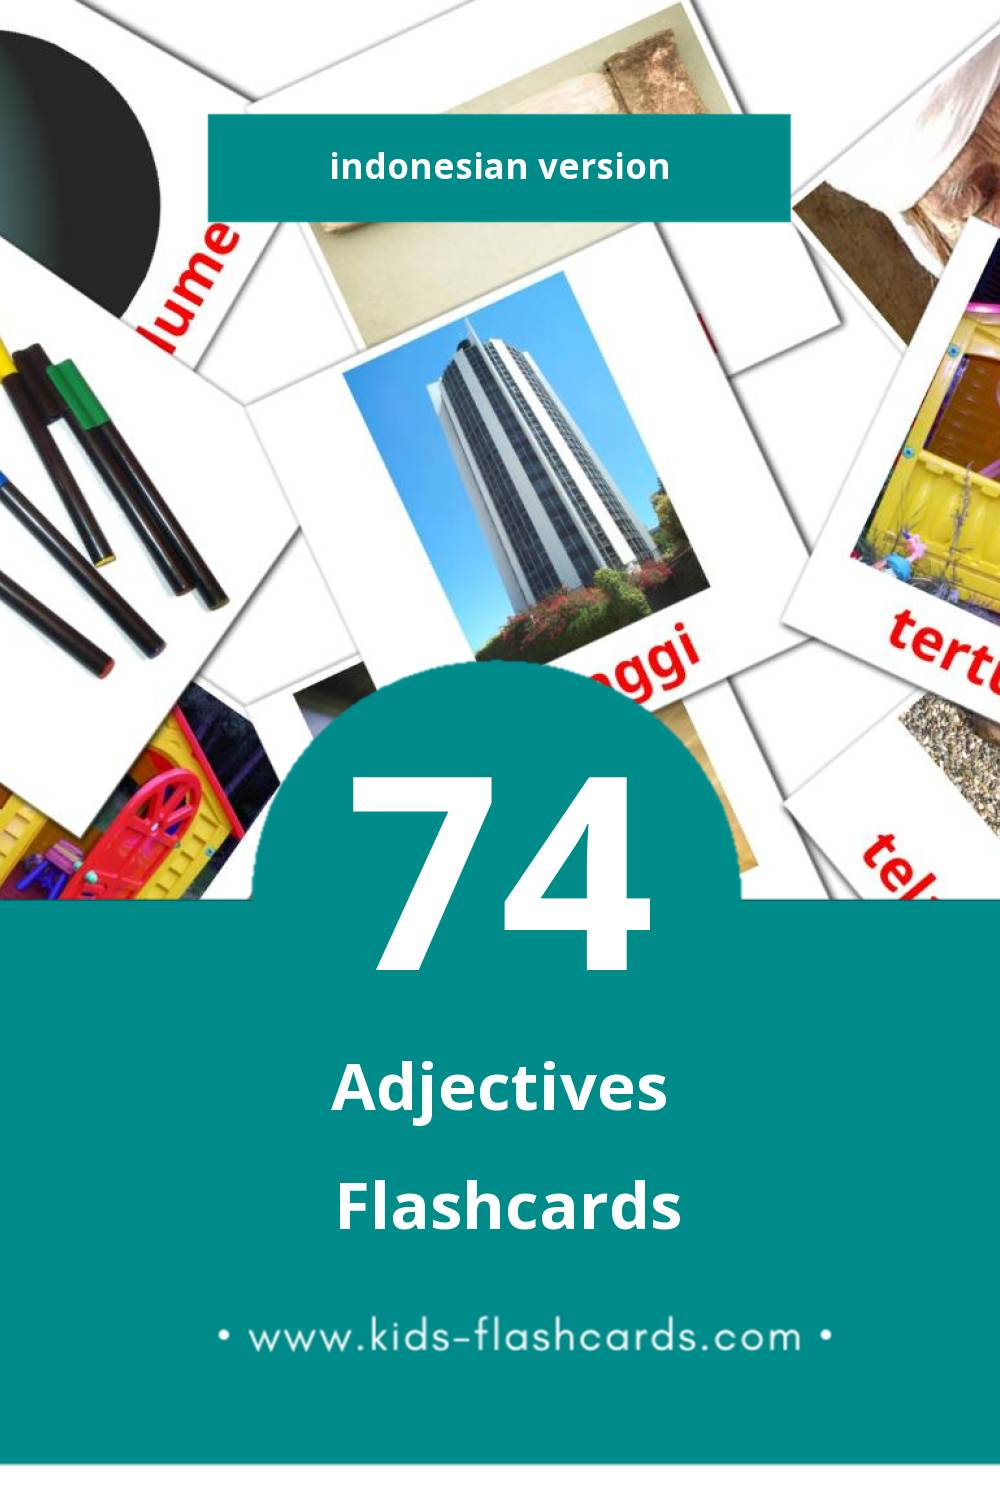 Visual adjective Flashcards for Toddlers (74 cards in Indonesian)